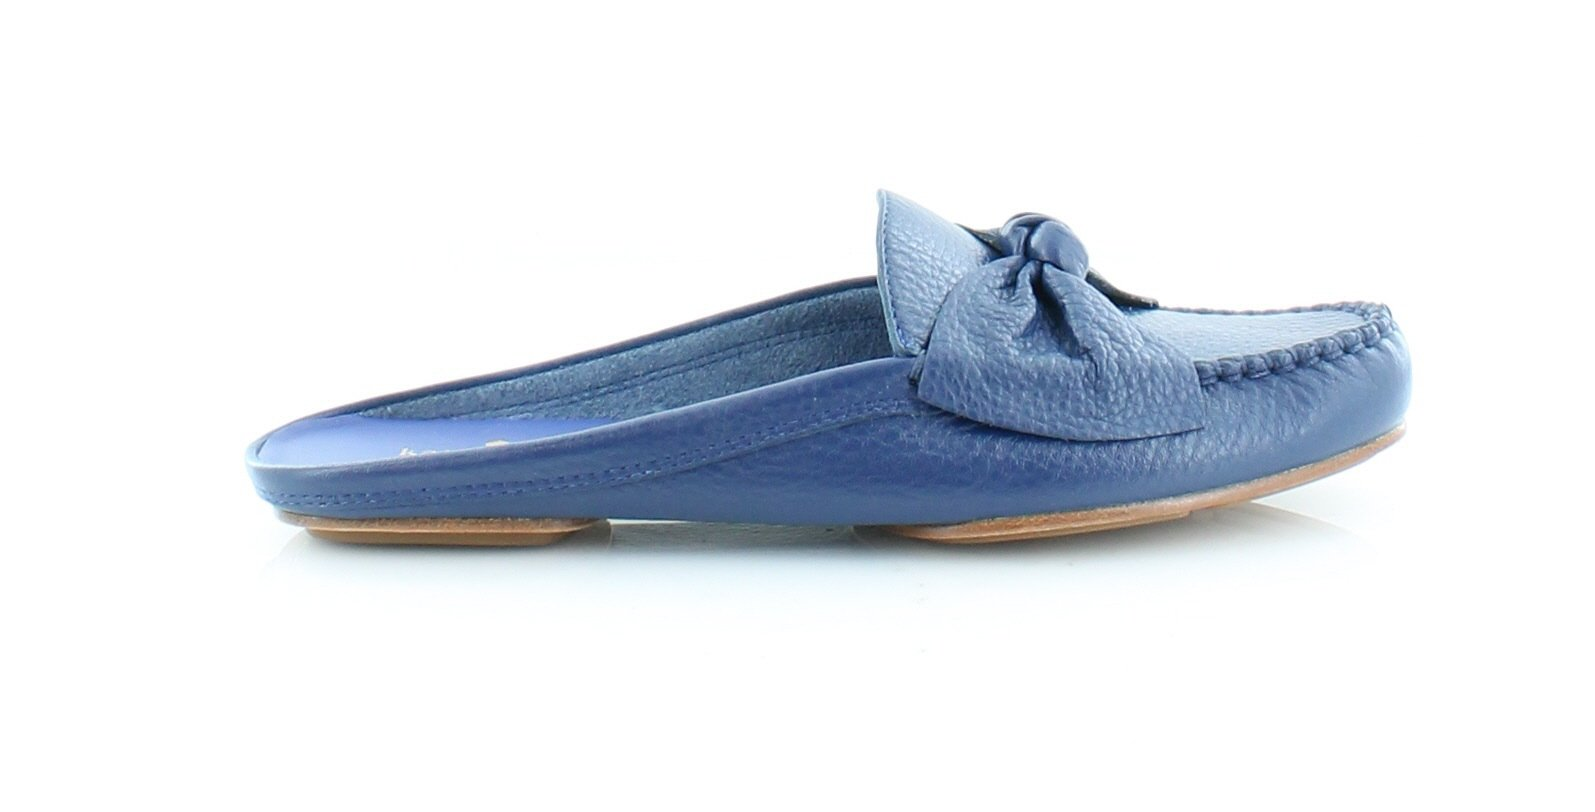 Kate Spade New York Women's Mallory Garden Blue Tumbled Leather Sandal by Kate Spade New York (Image #3)